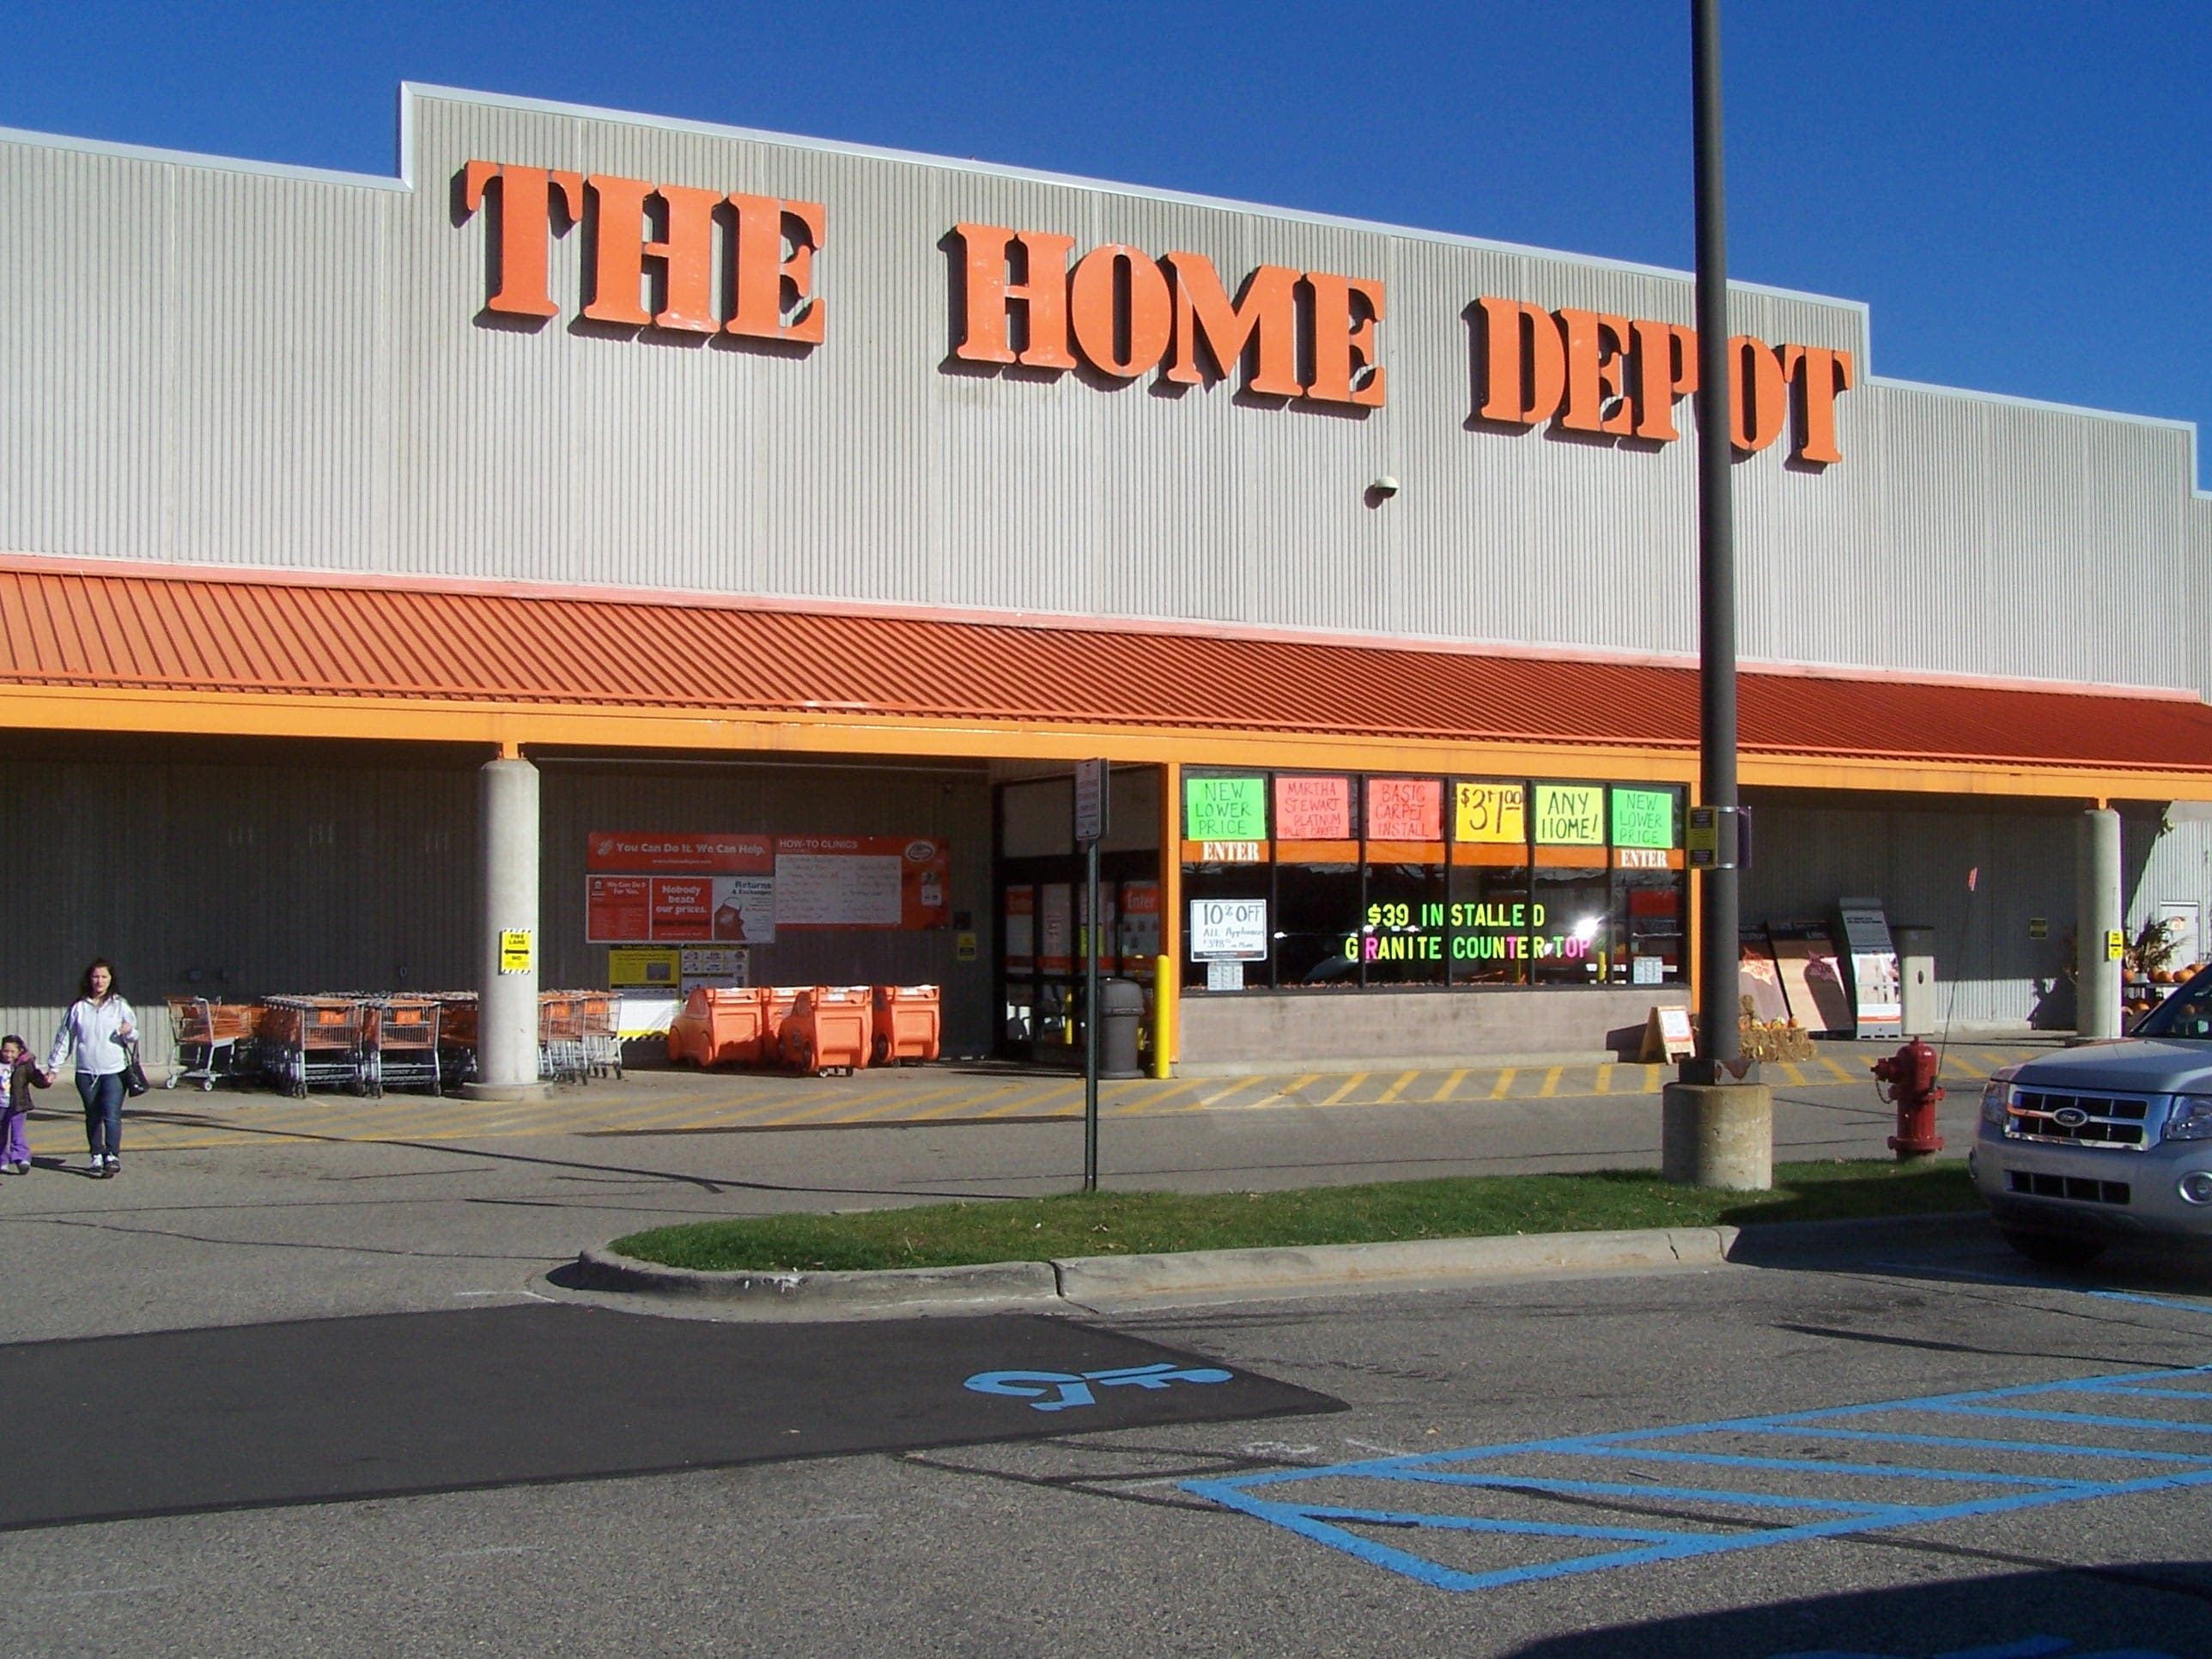 Police: 2 Men Accused of Stealing at Home Depot | Shelby ...